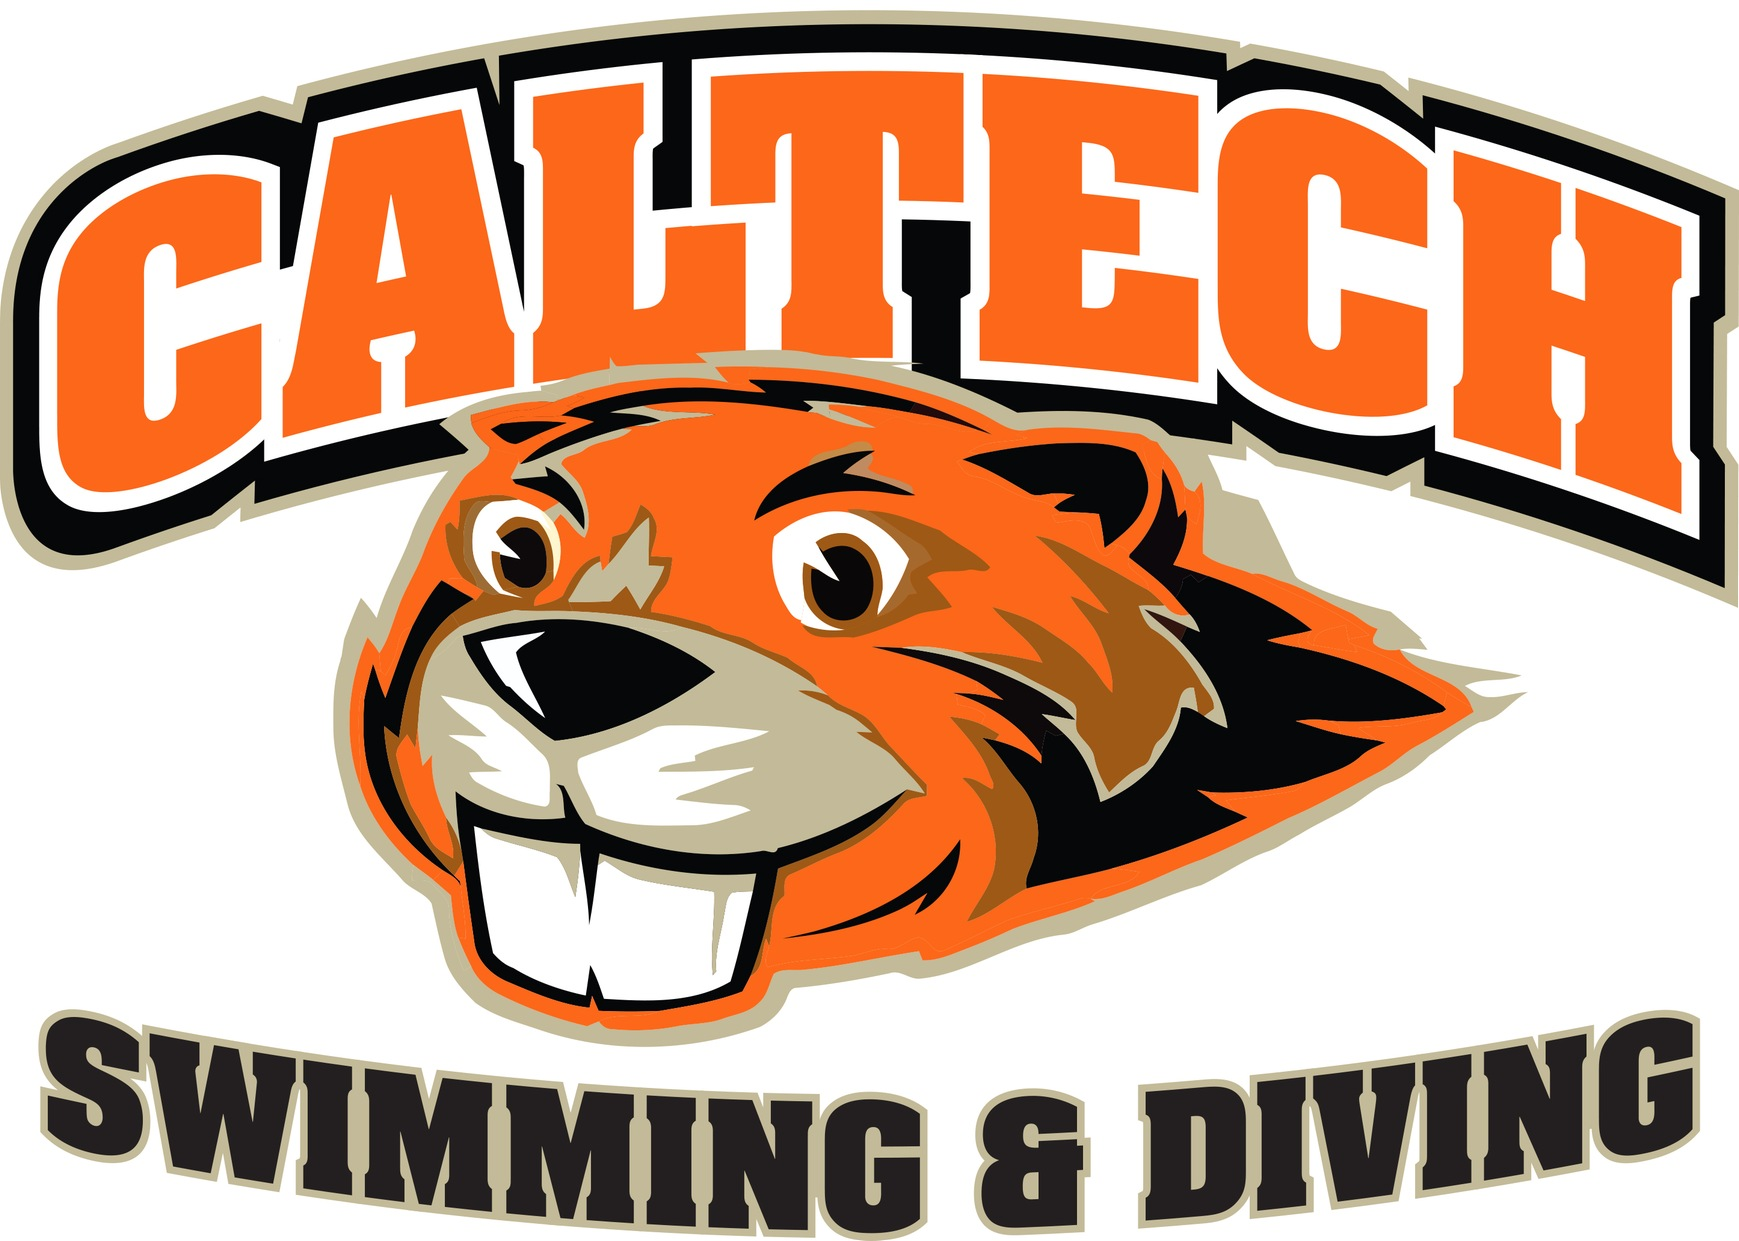 Nov. 10 Cal Lutheran Meet Postponed, Make-Up Date TBA